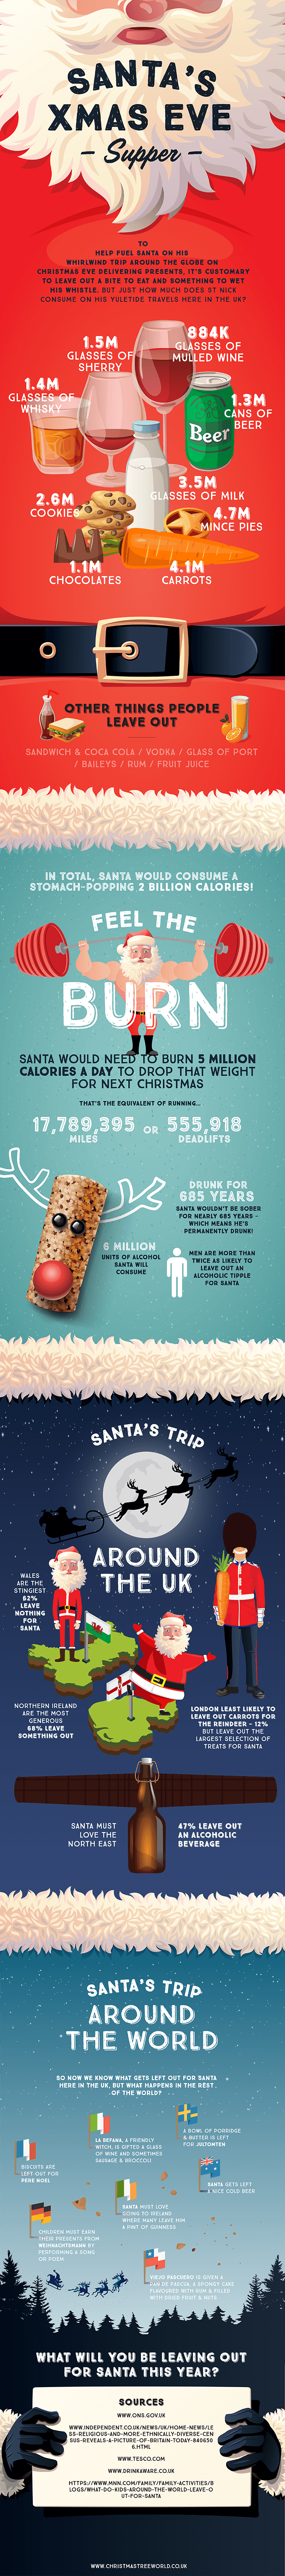 What Does Santa's Diet Consist Of? - Infographic